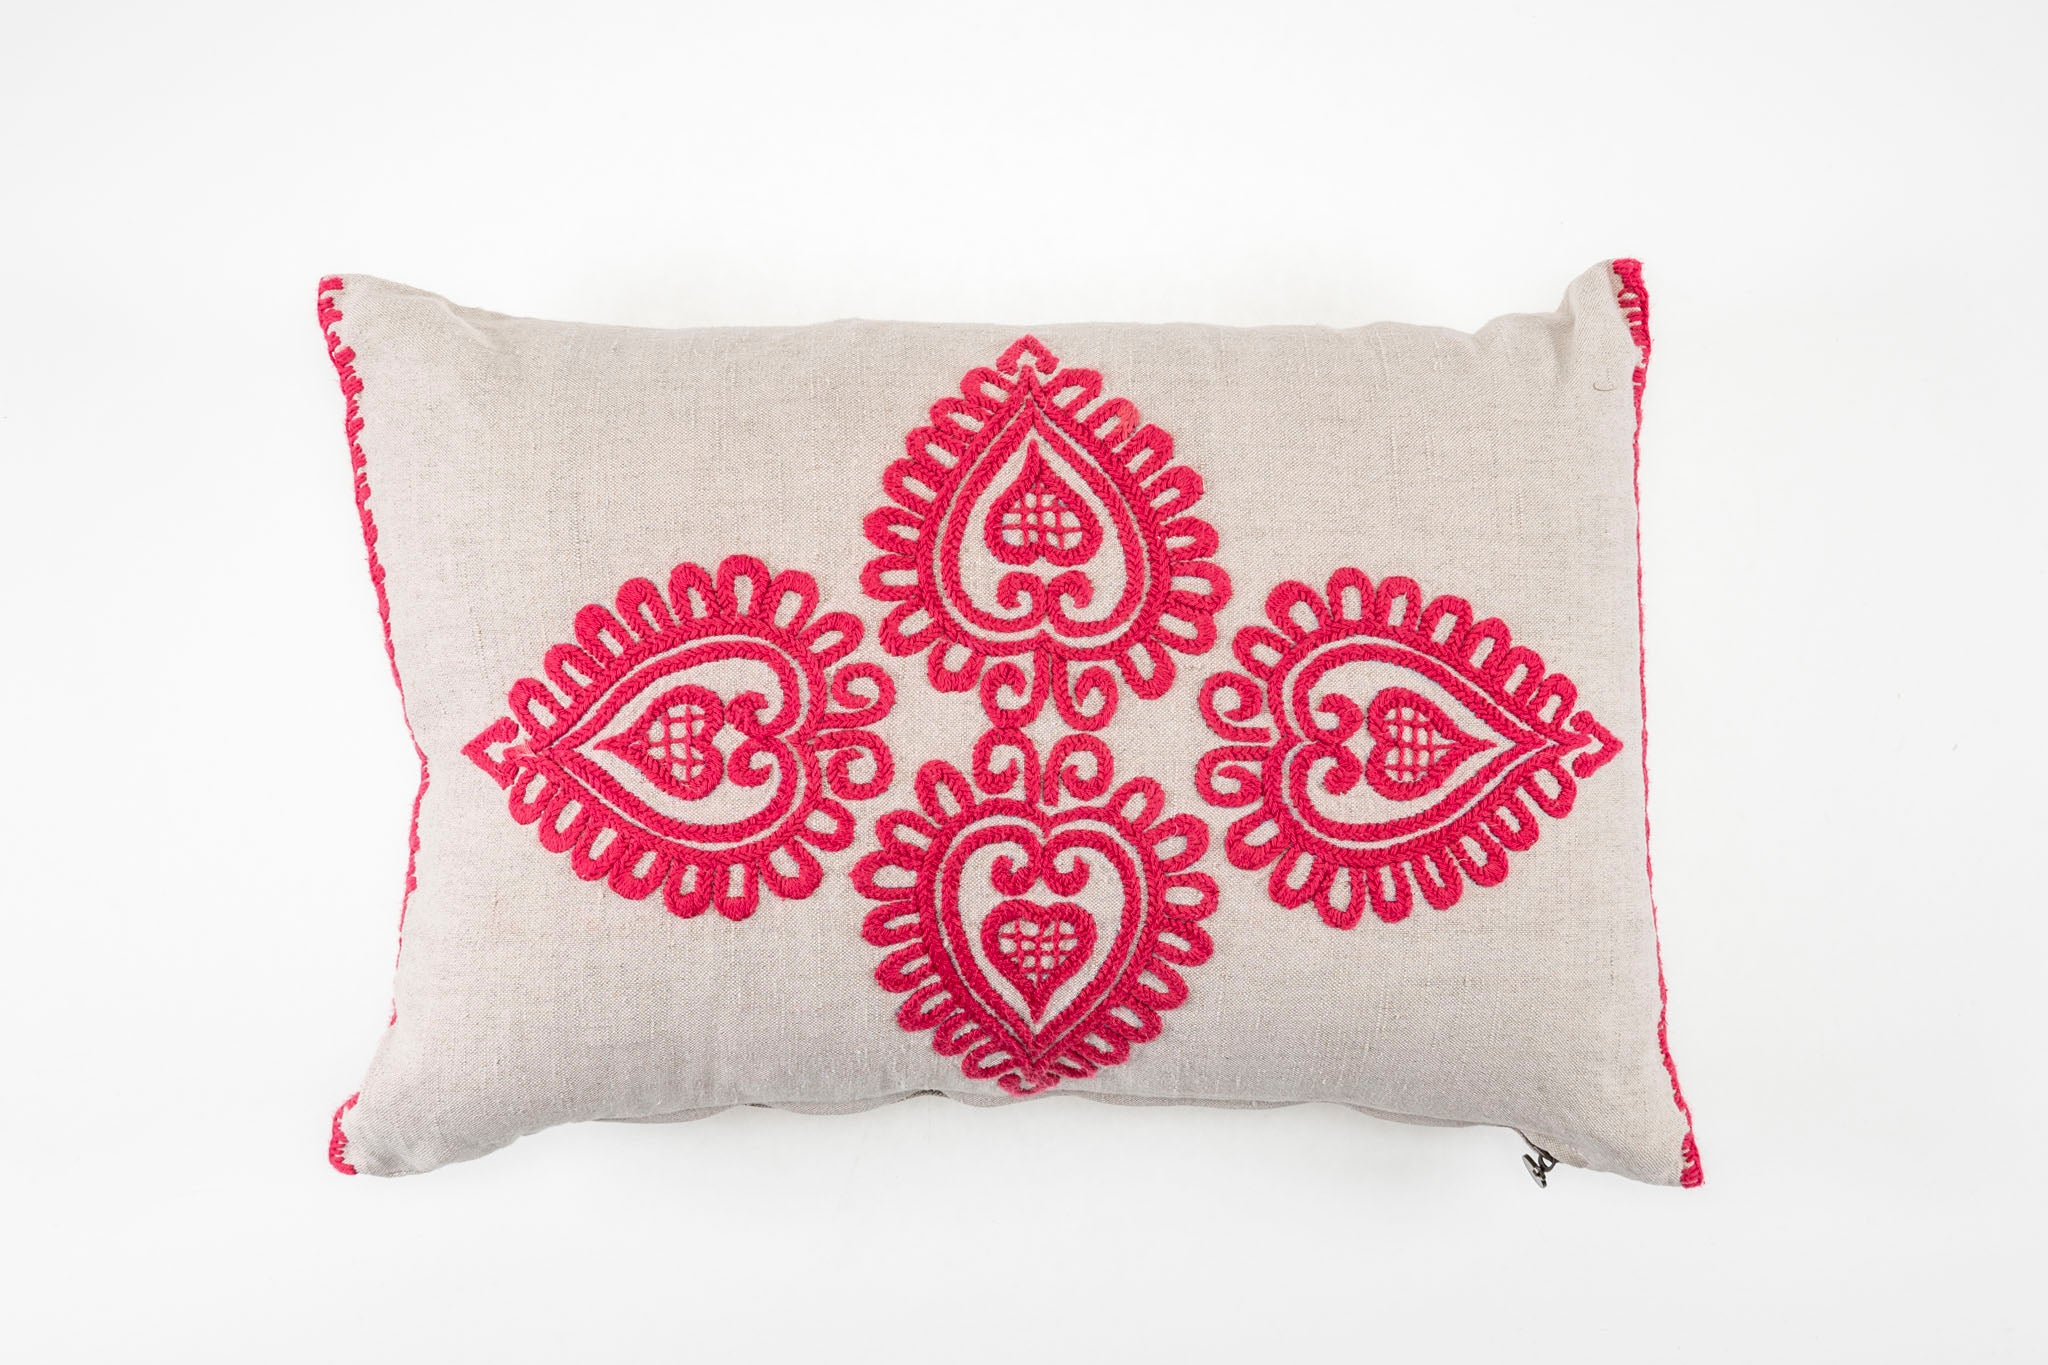 Pillow: Embroidered antique handwoven Hungarian hemp